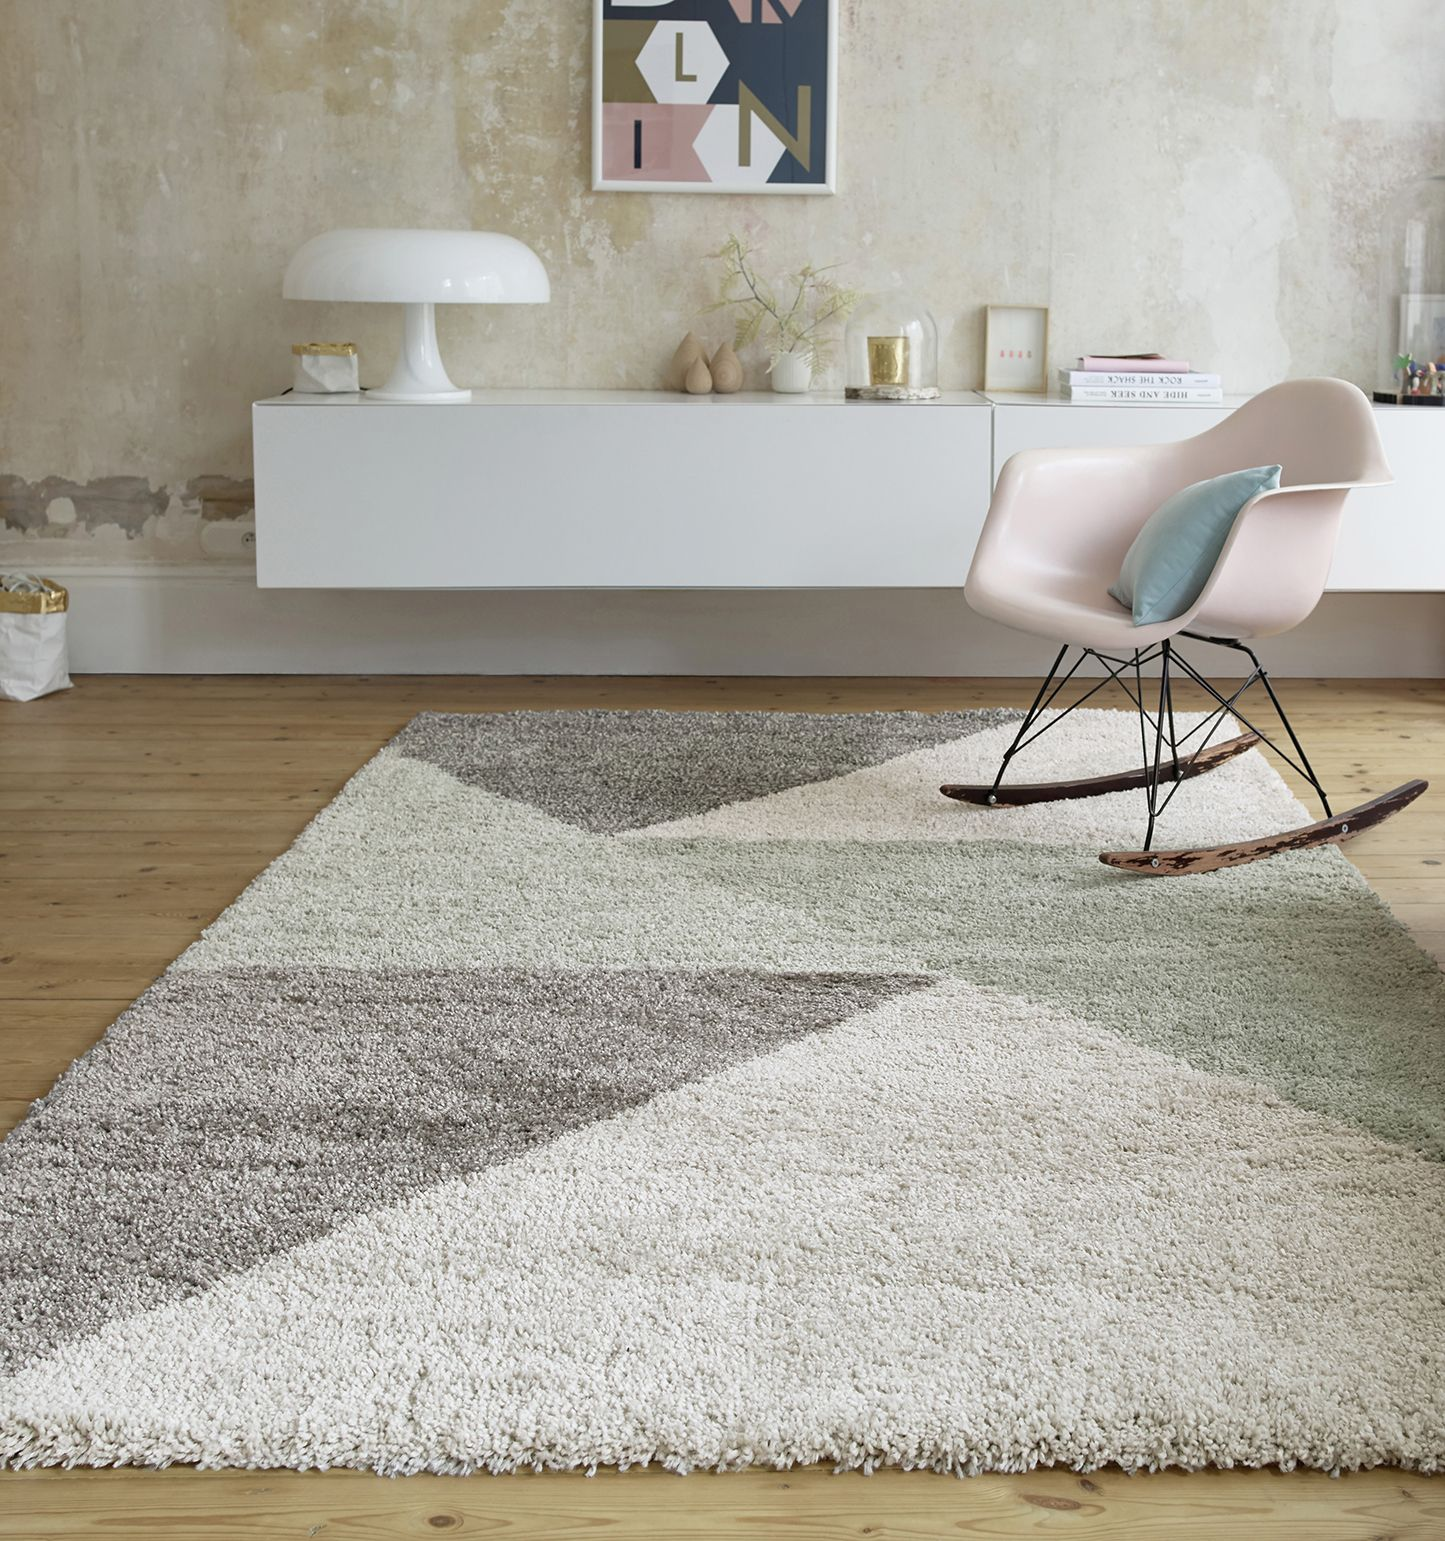 Ambiance Scandinave Salon Ambiance Scandinave Revisitée Tapis Triangle